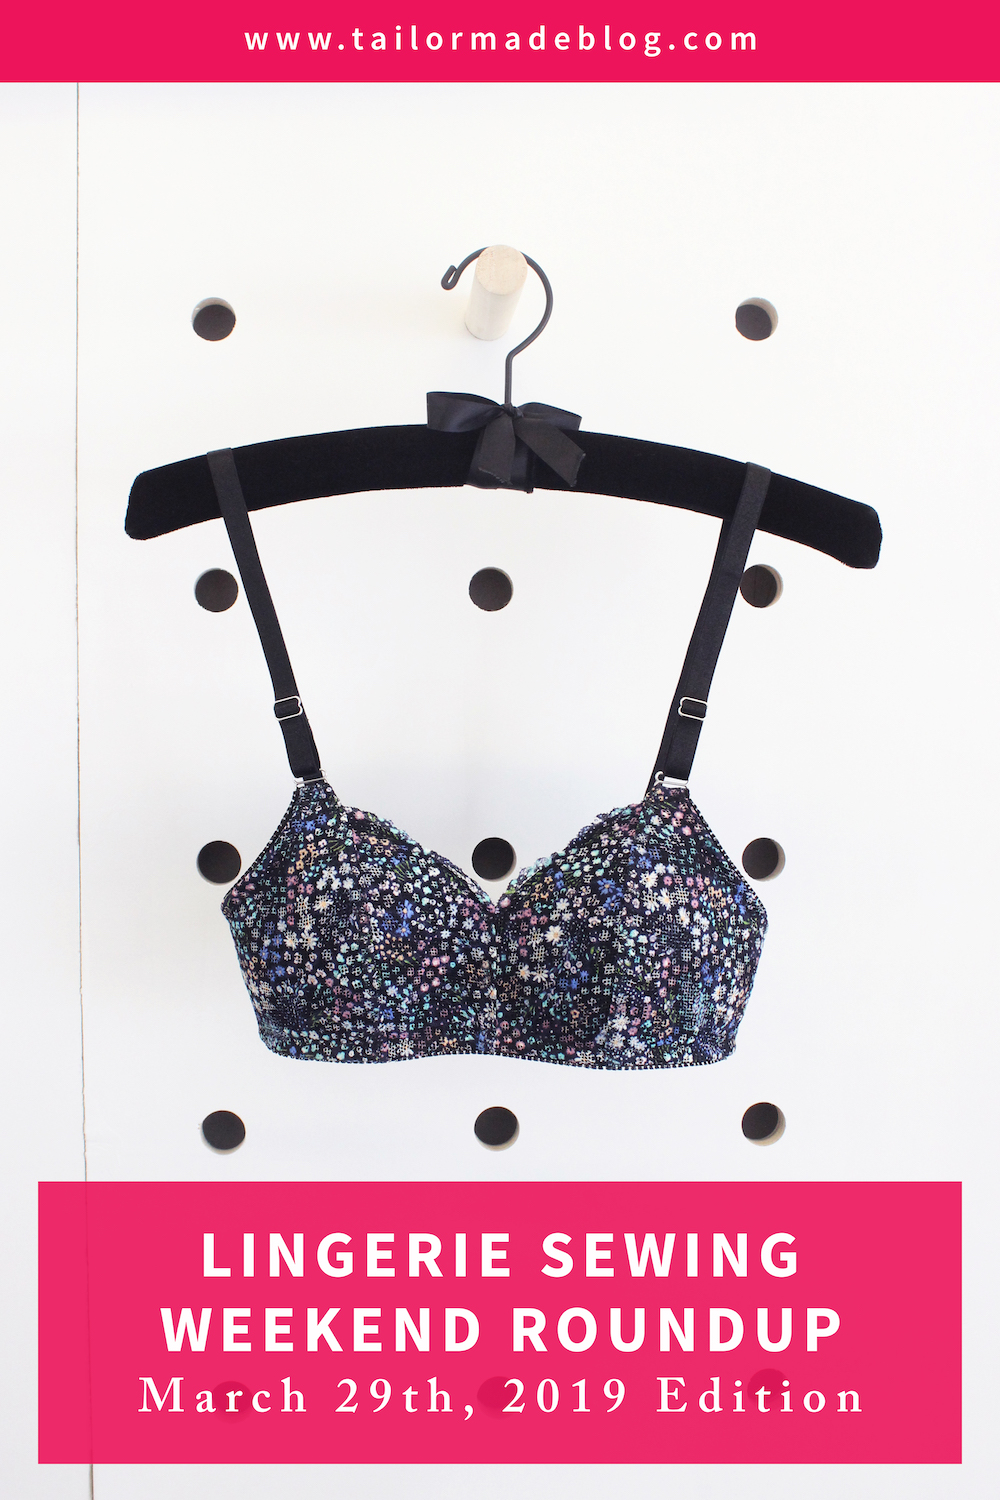 Lingerie Sewing Weekend Roundup